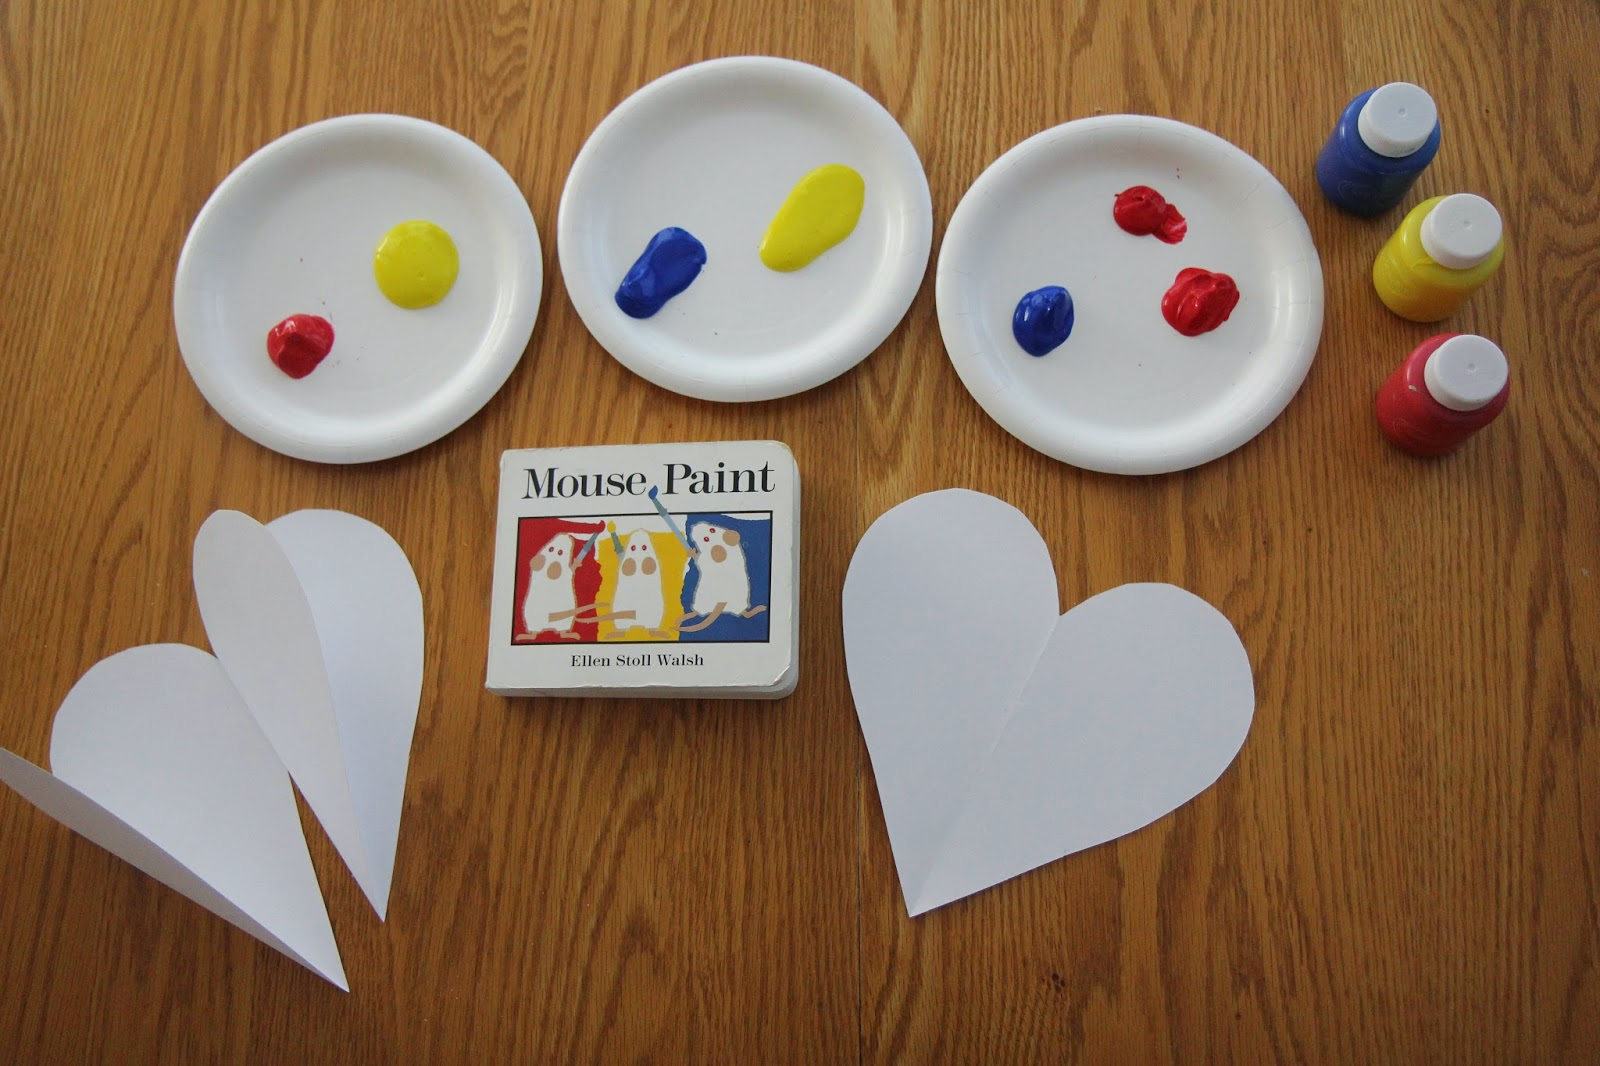 Toddler Approved!: Surprise Color Mixing Heart Craft for Preschoolers